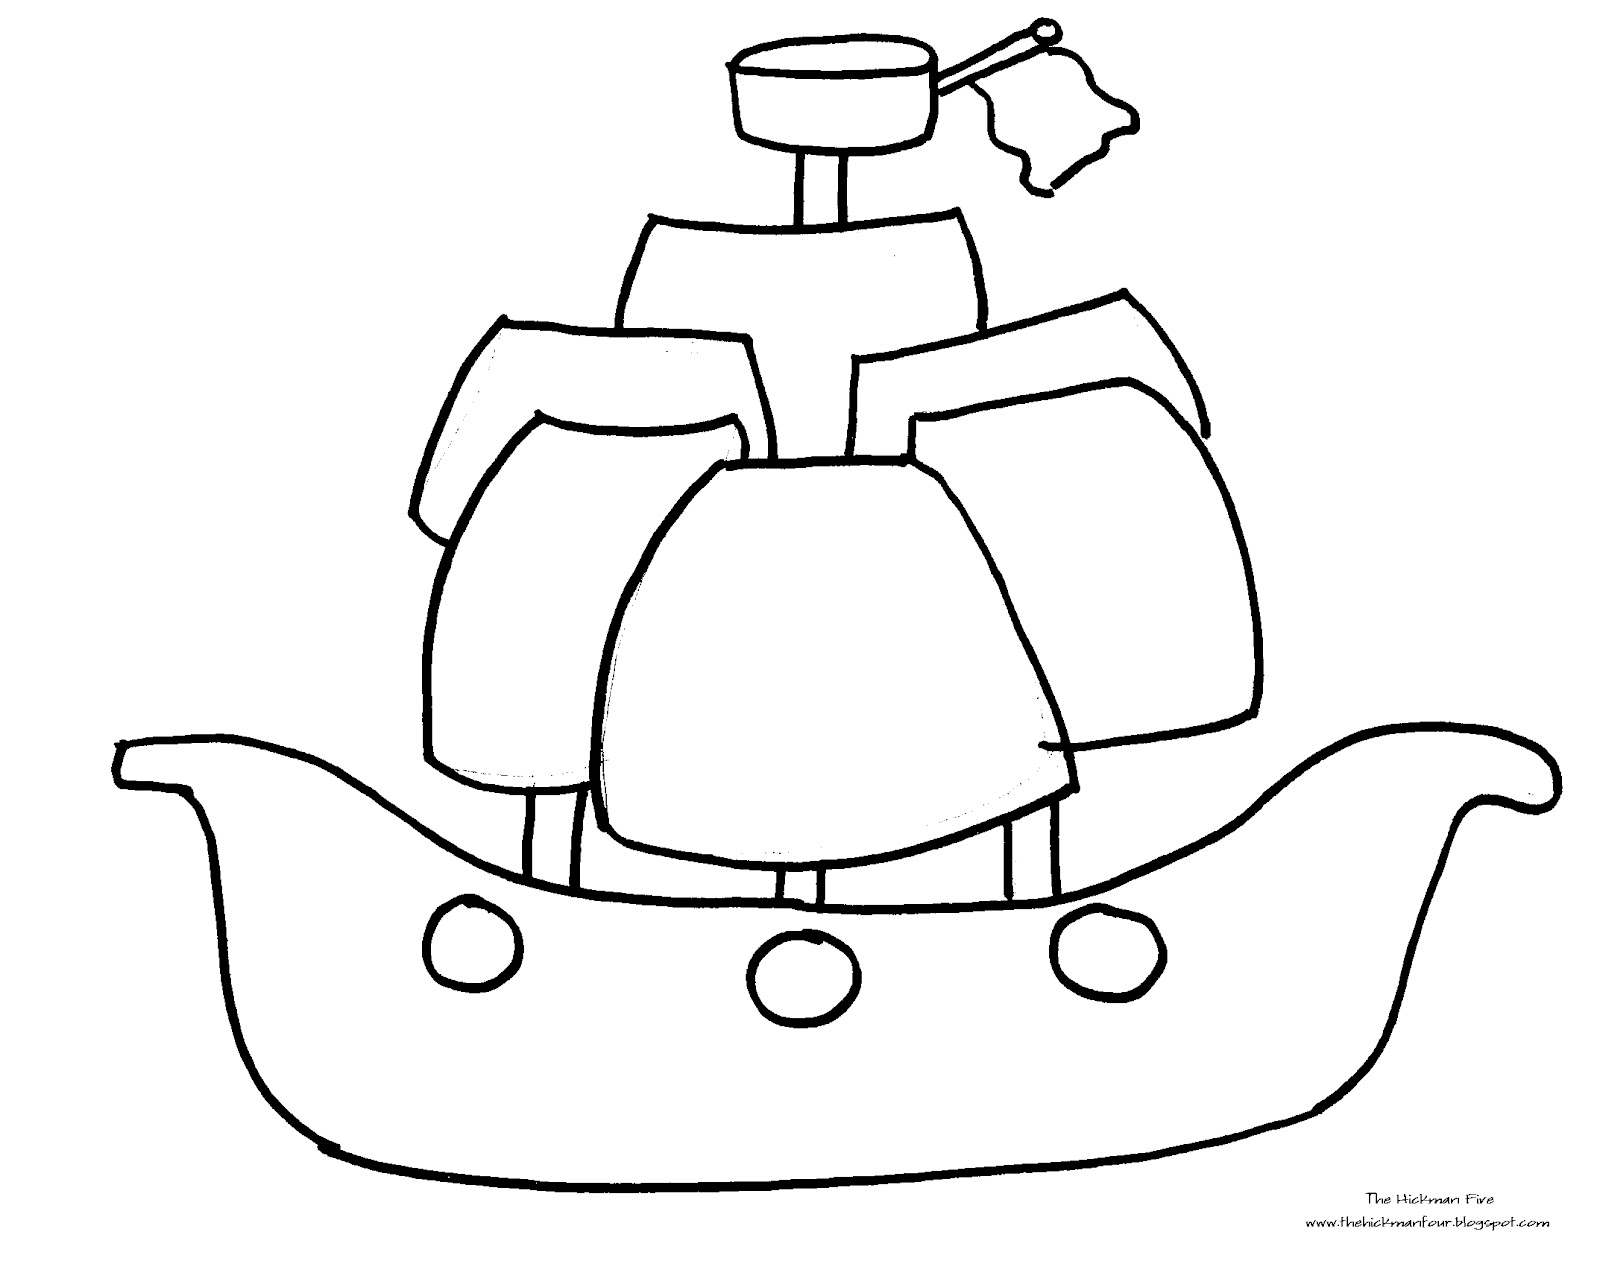 1600x1267 Pirate Ship Coloring Page